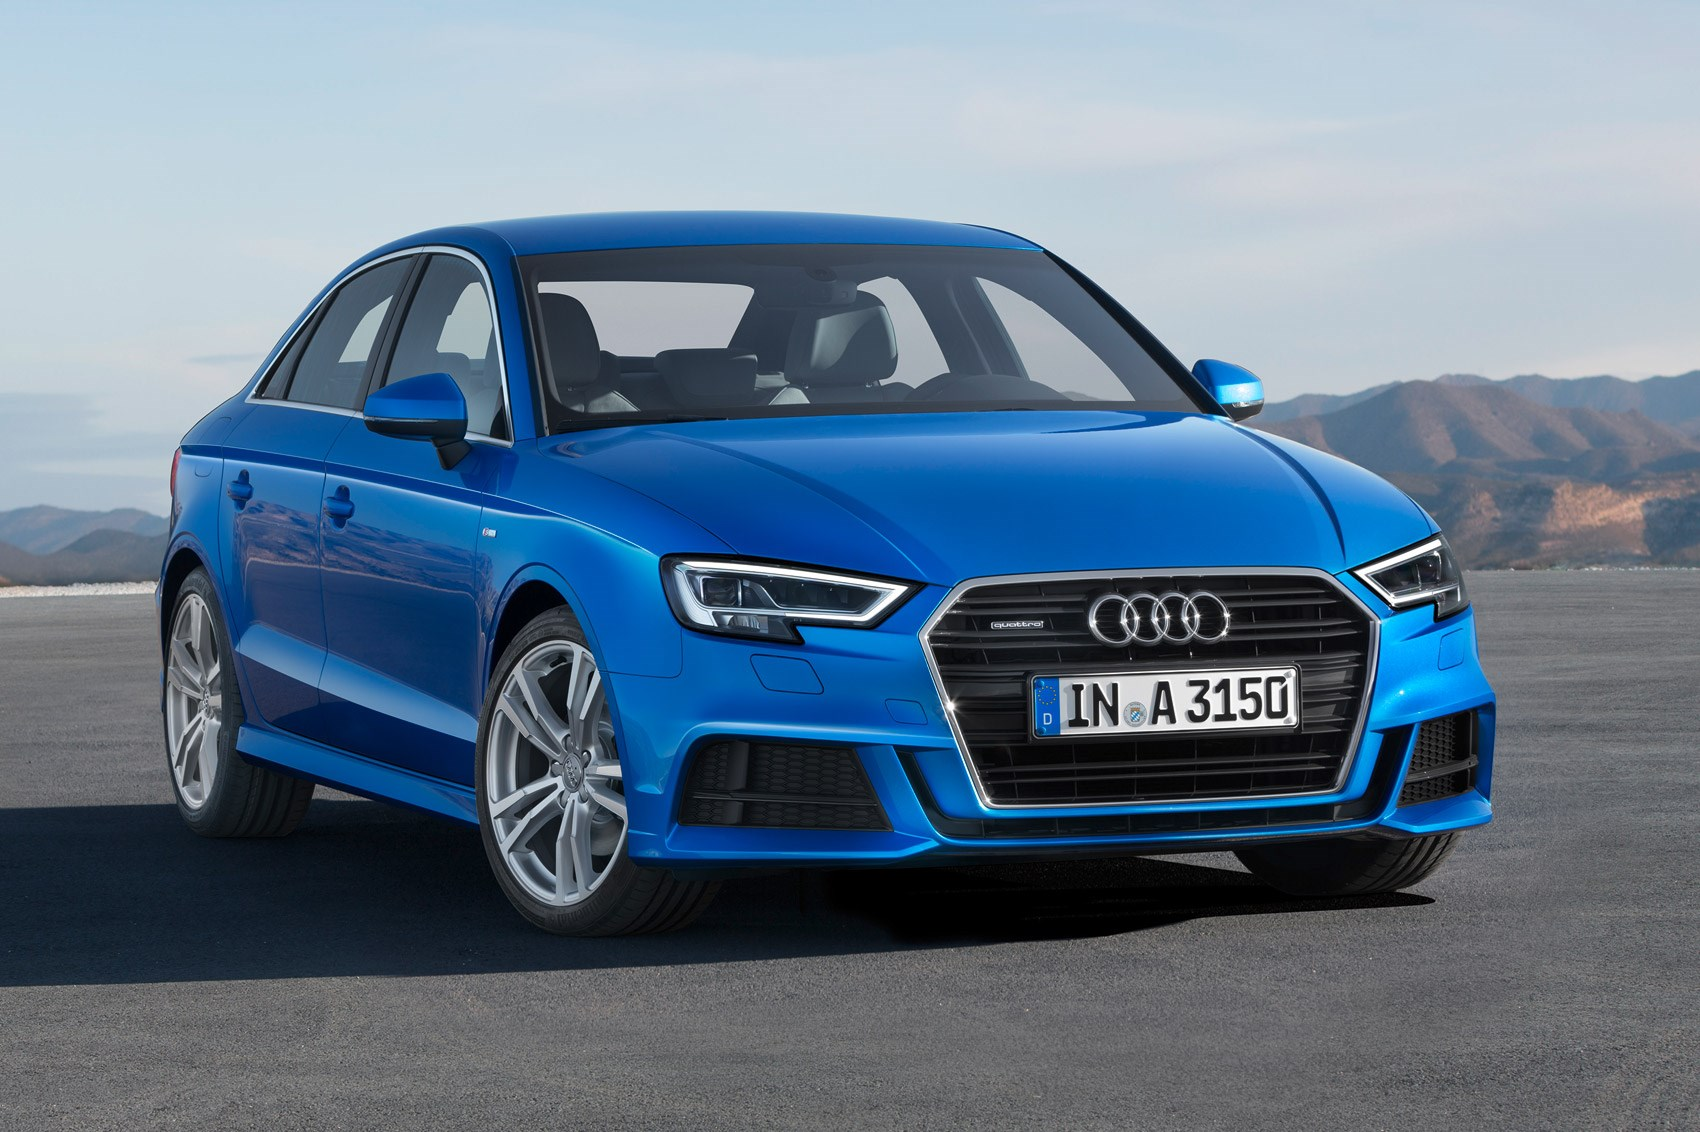 New audi a3 sedan details hd - More Info On Audi A3